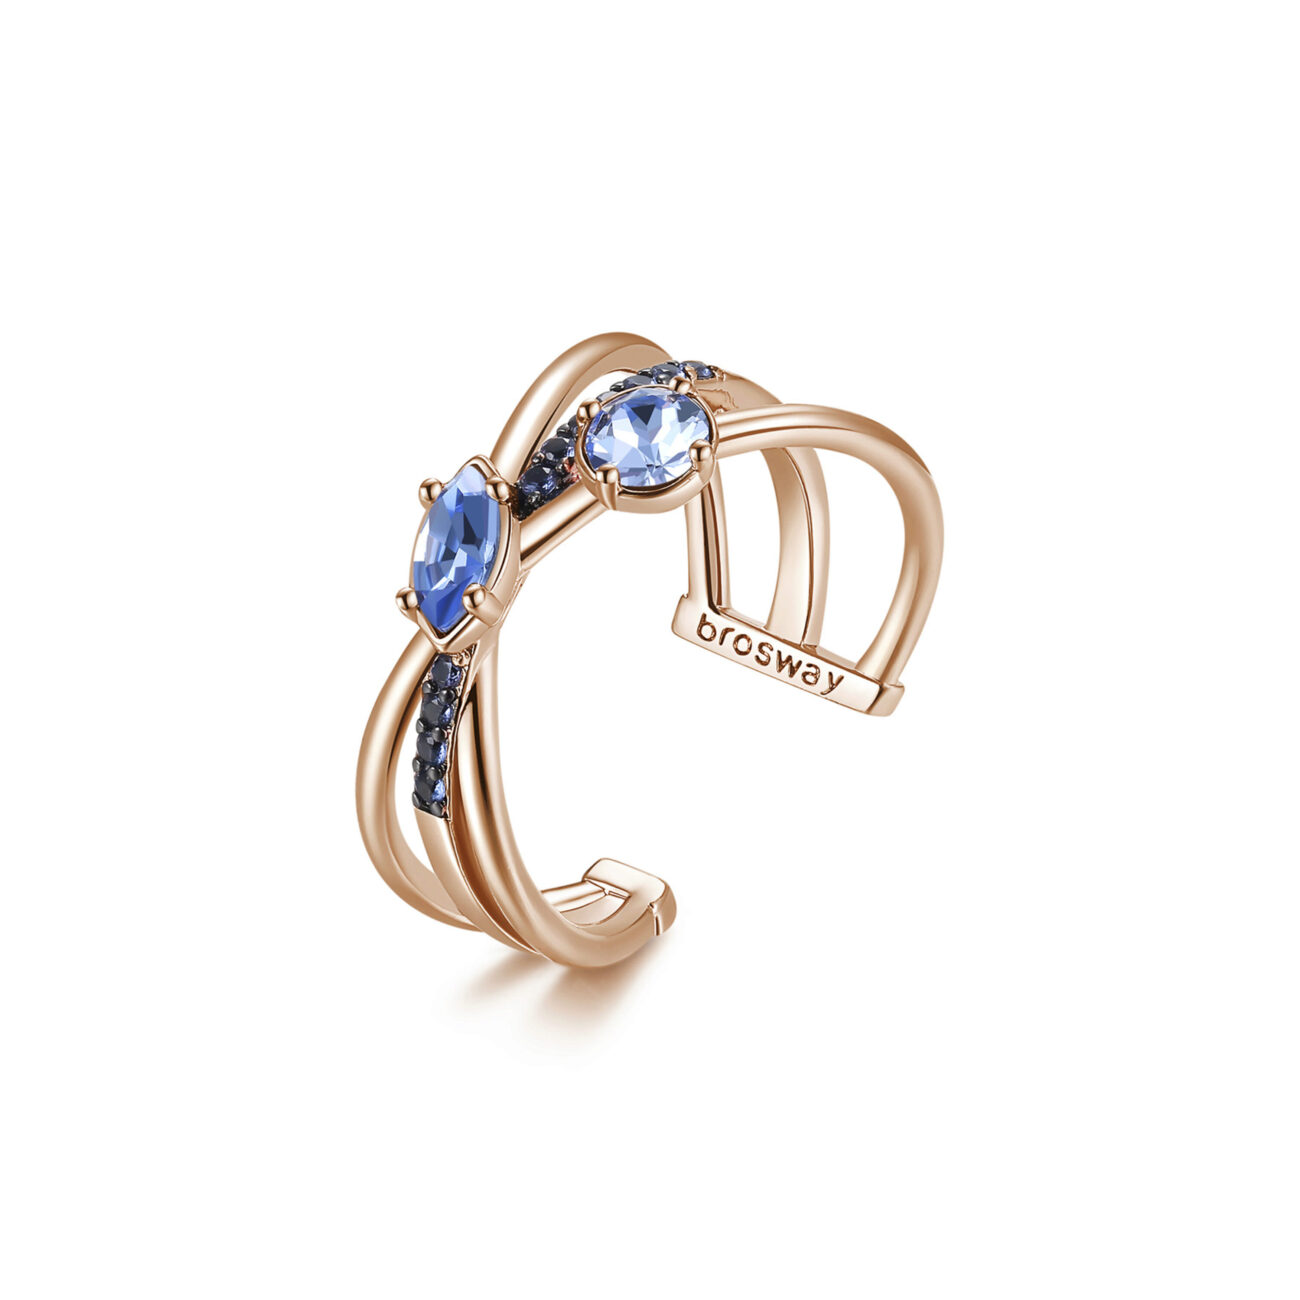 Rhodiated brass ring and rose gold galvanic with blue zircons and light sapphire Swarovski©crystals.